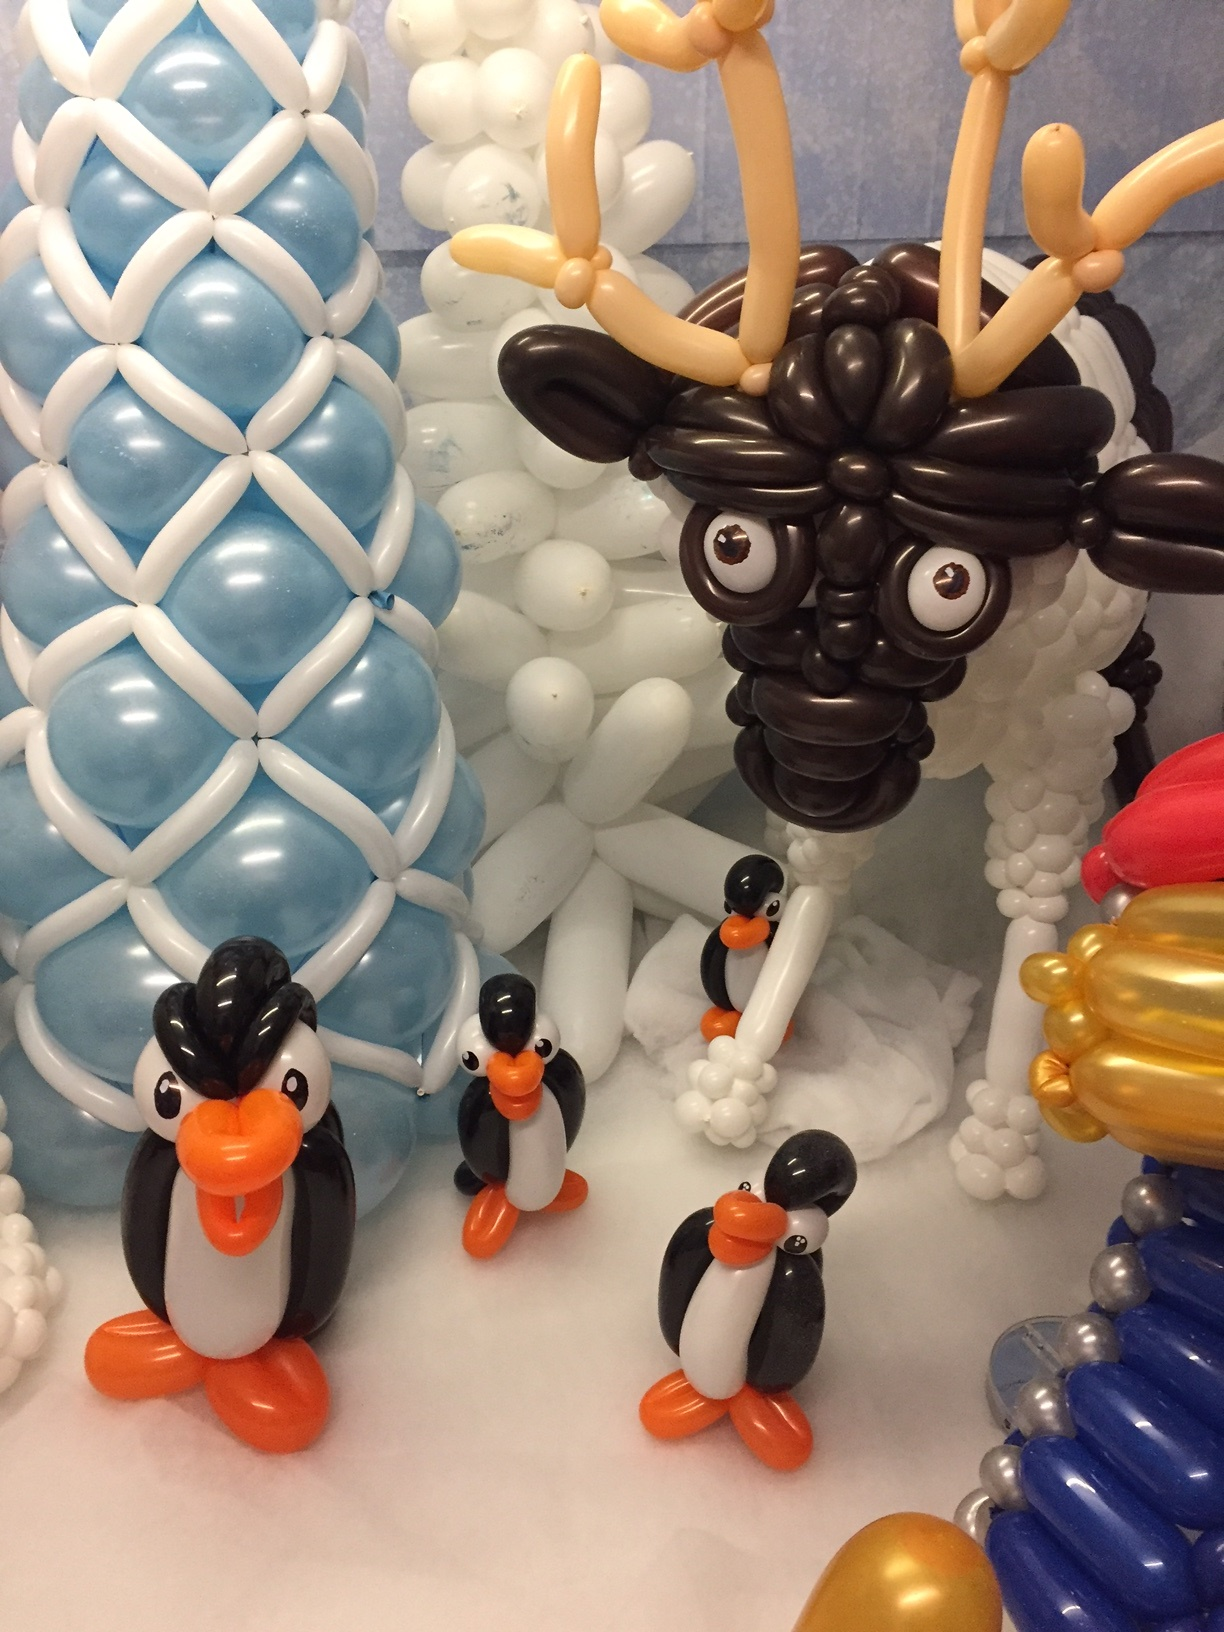 Dr Bob's Christmas Balloon Grotto